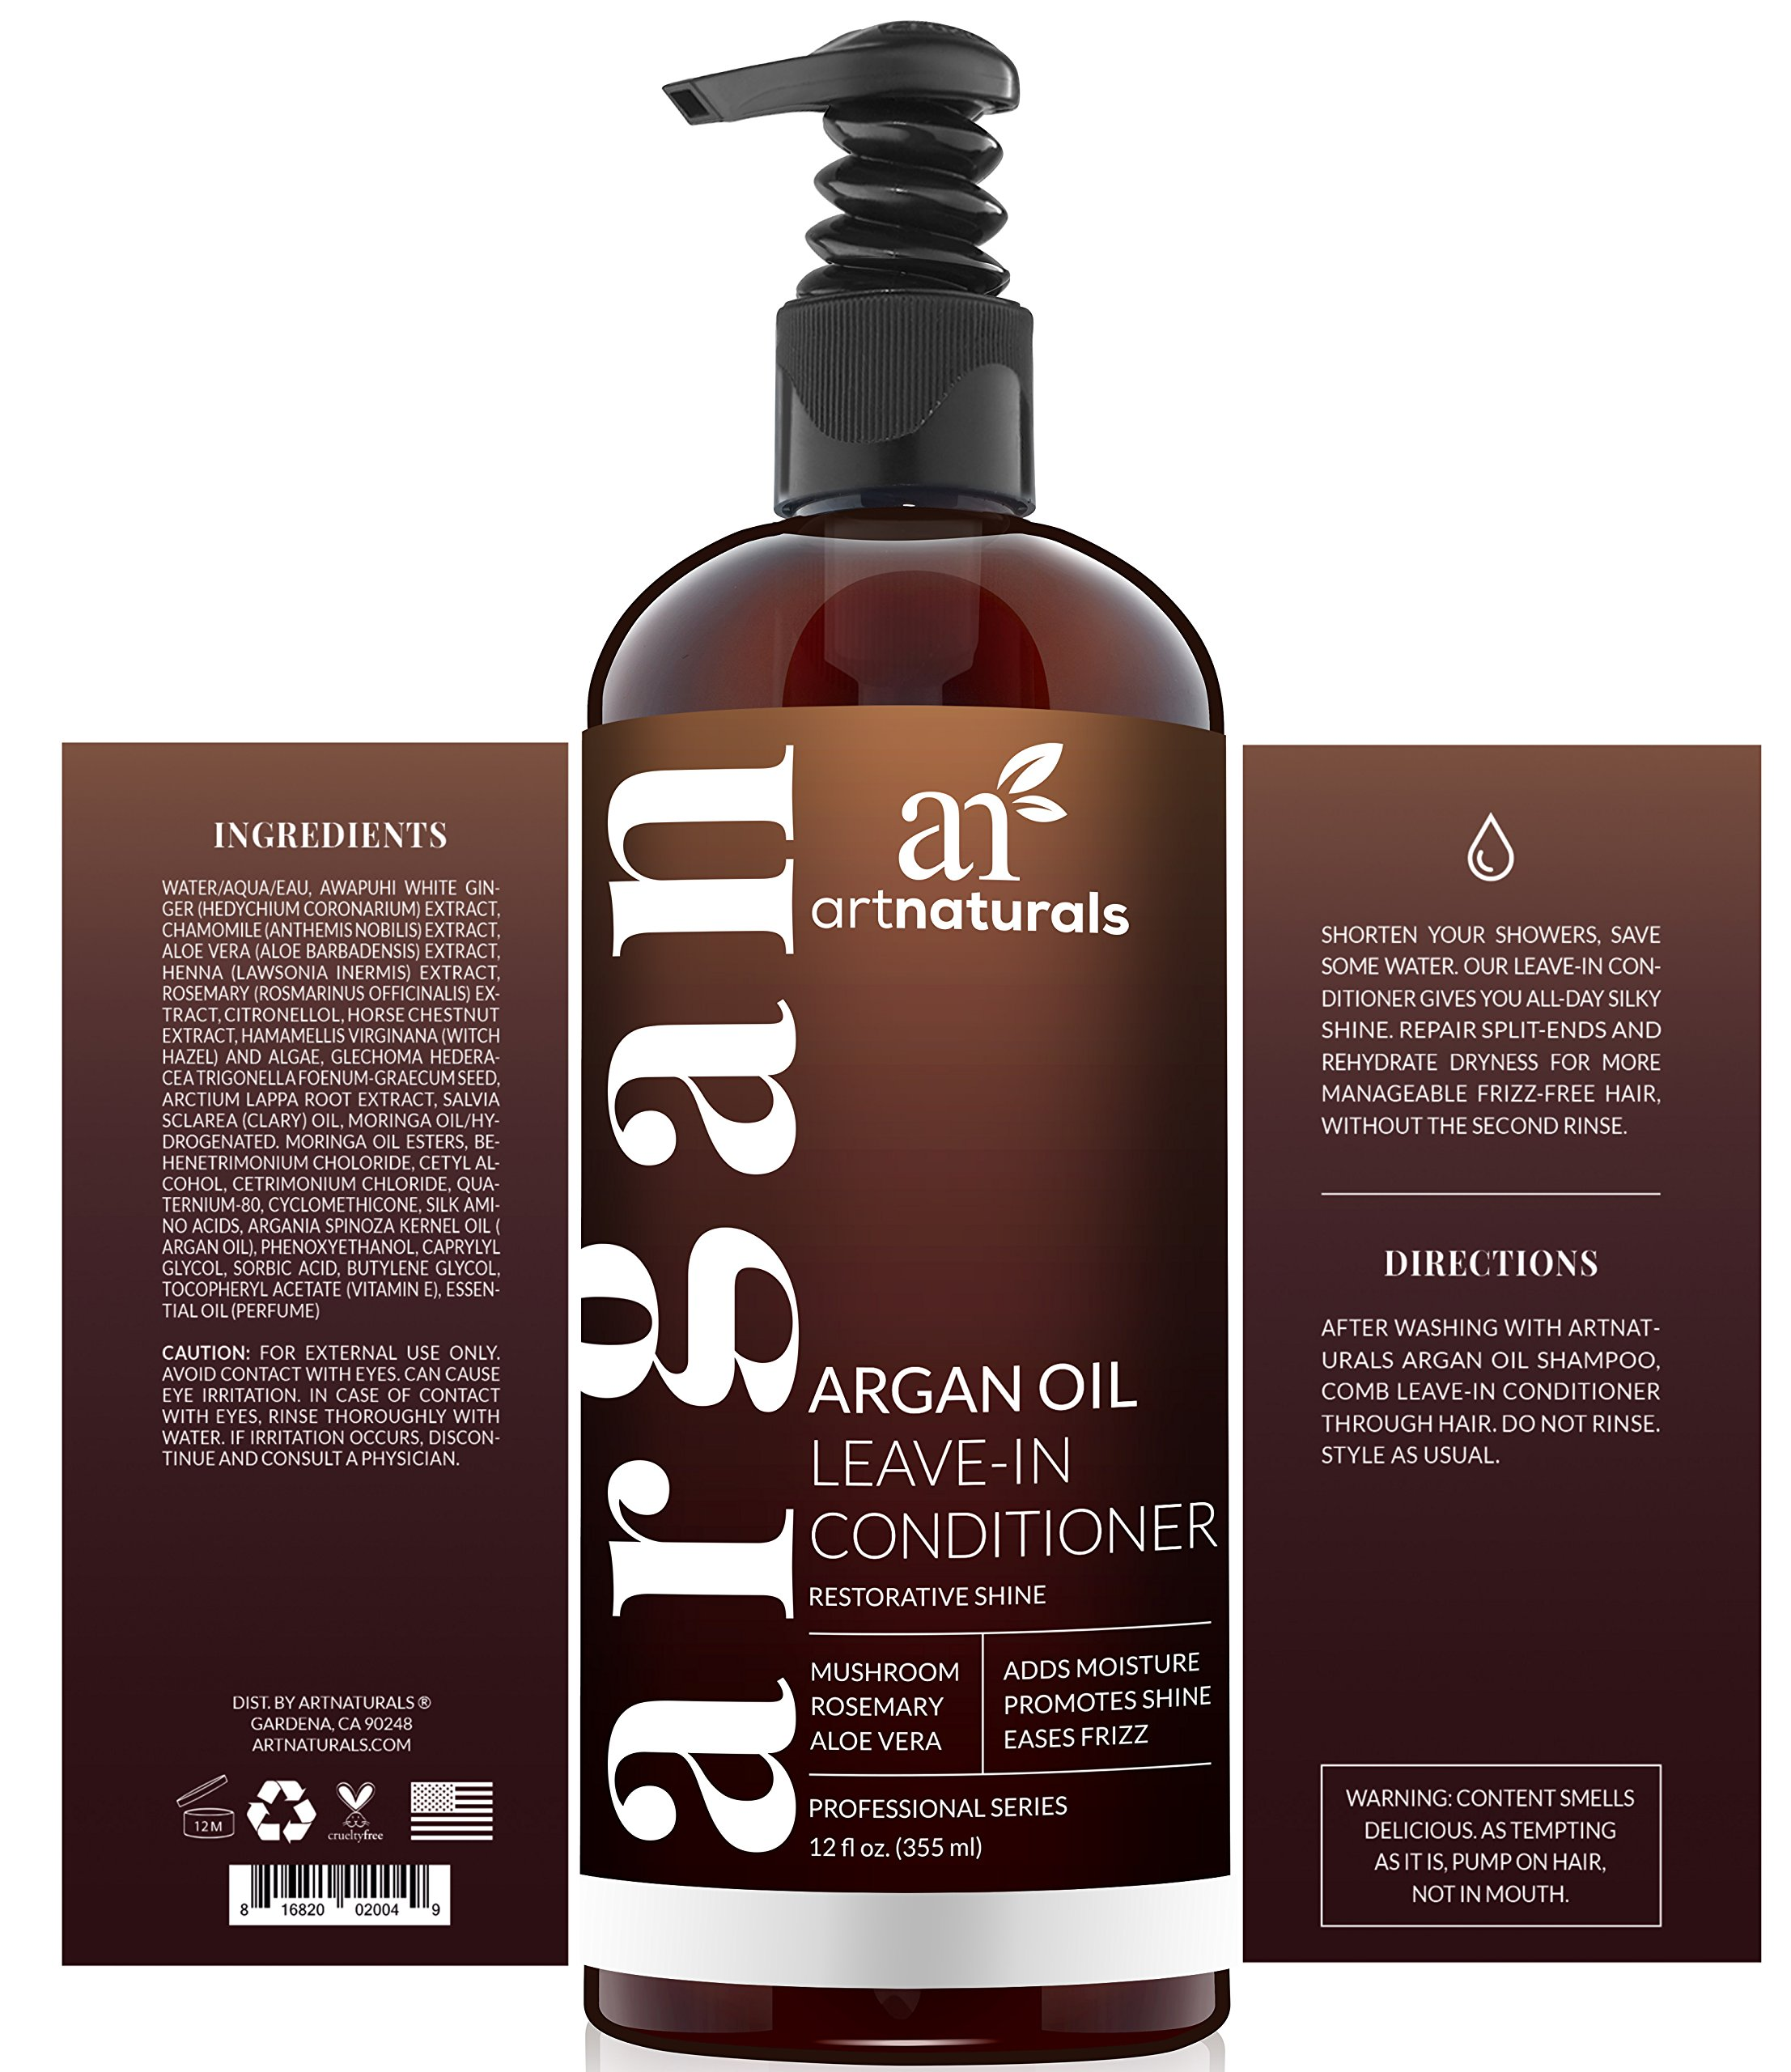 ArtNaturals Argan Oil Leave-In Conditioner - 12 oz Made with Organic and Natural Ingredients - for All Hair Types – Treatment for Damaged, Dry, Color Treated and Hair Loss by ArtNaturals (Image #2)